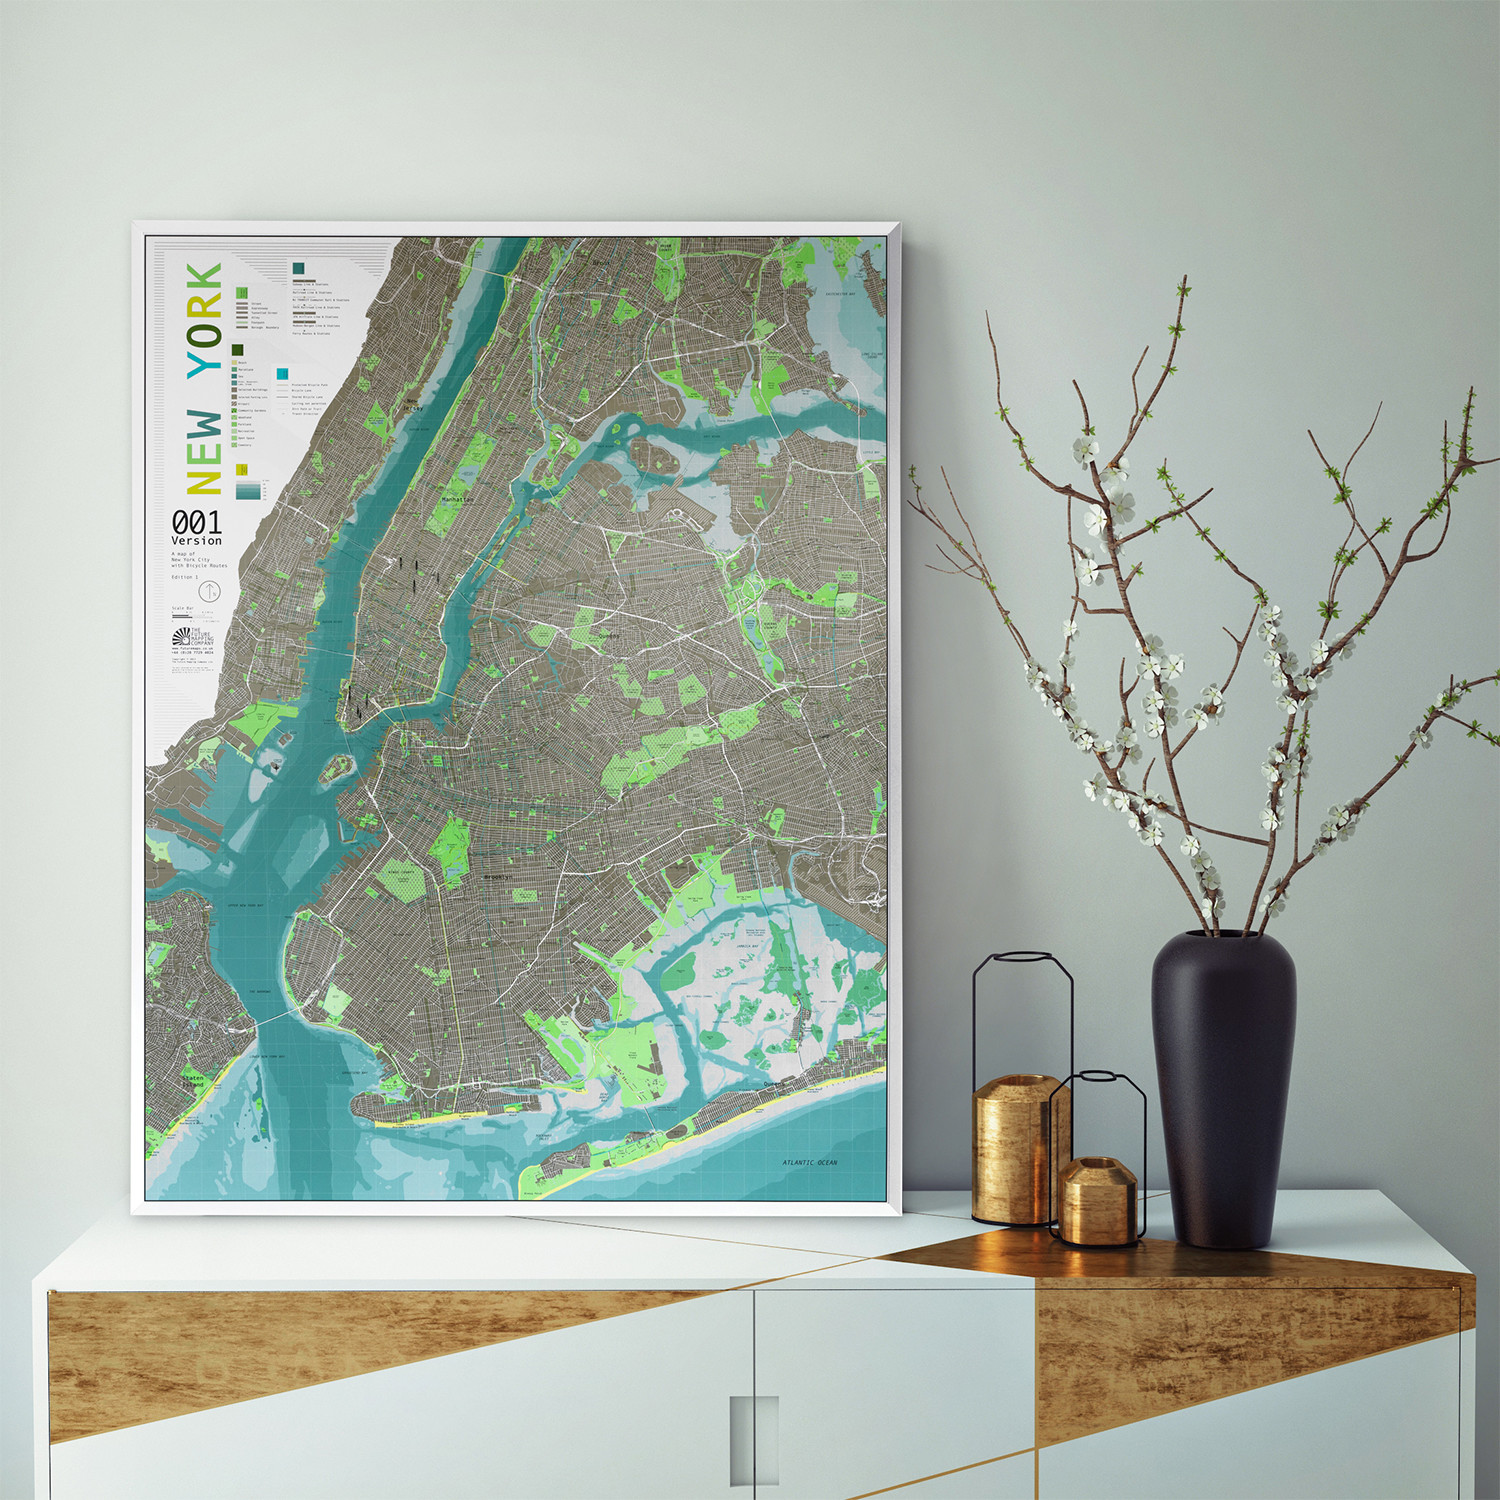 New York City Street Map Version Paper The Future Mapping - New york street map wallpaper